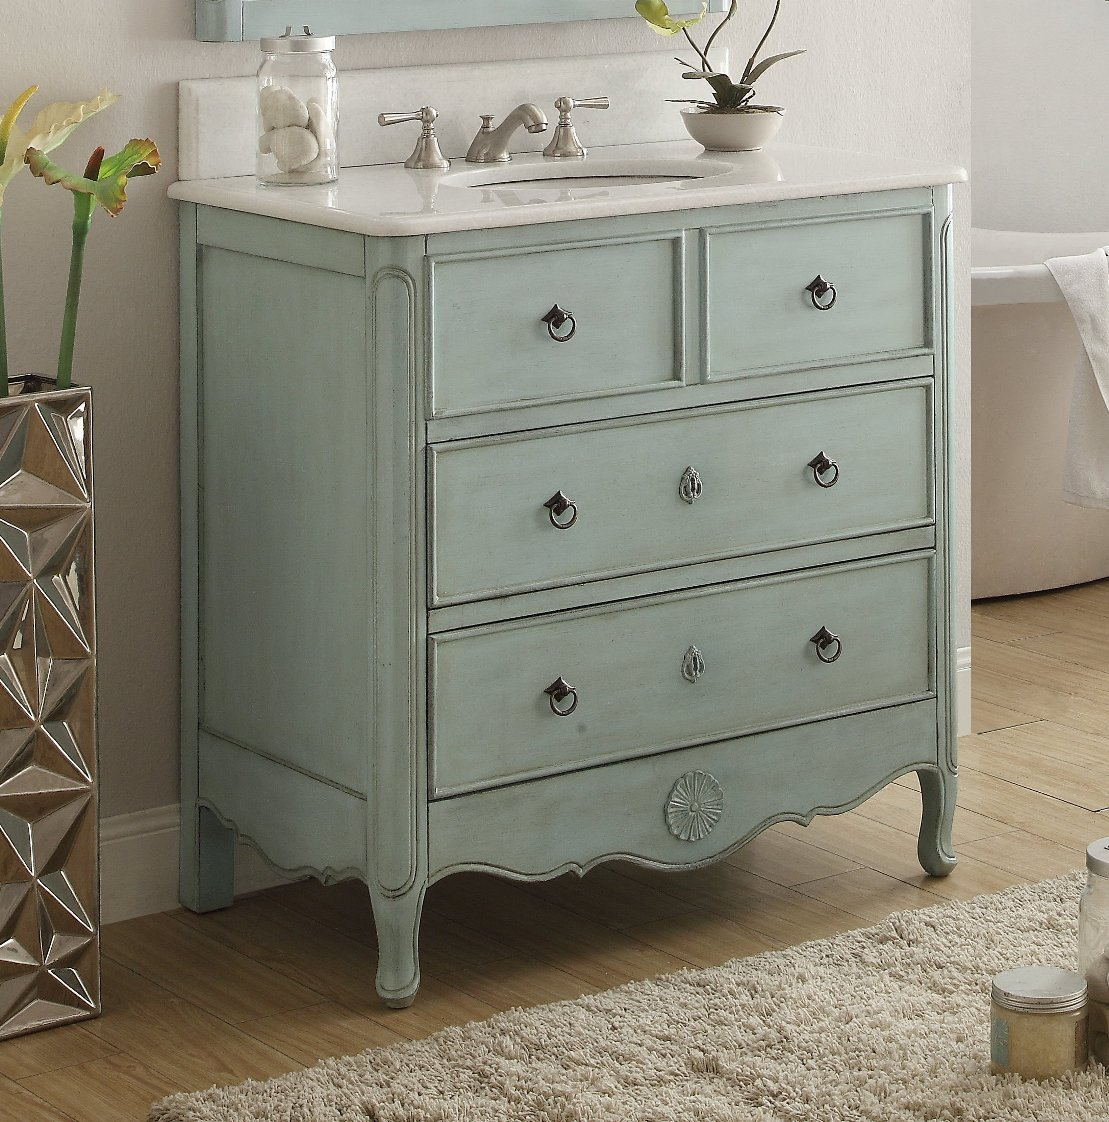 bathroom stool blue vanity cbcpnuma cabinet org navy double